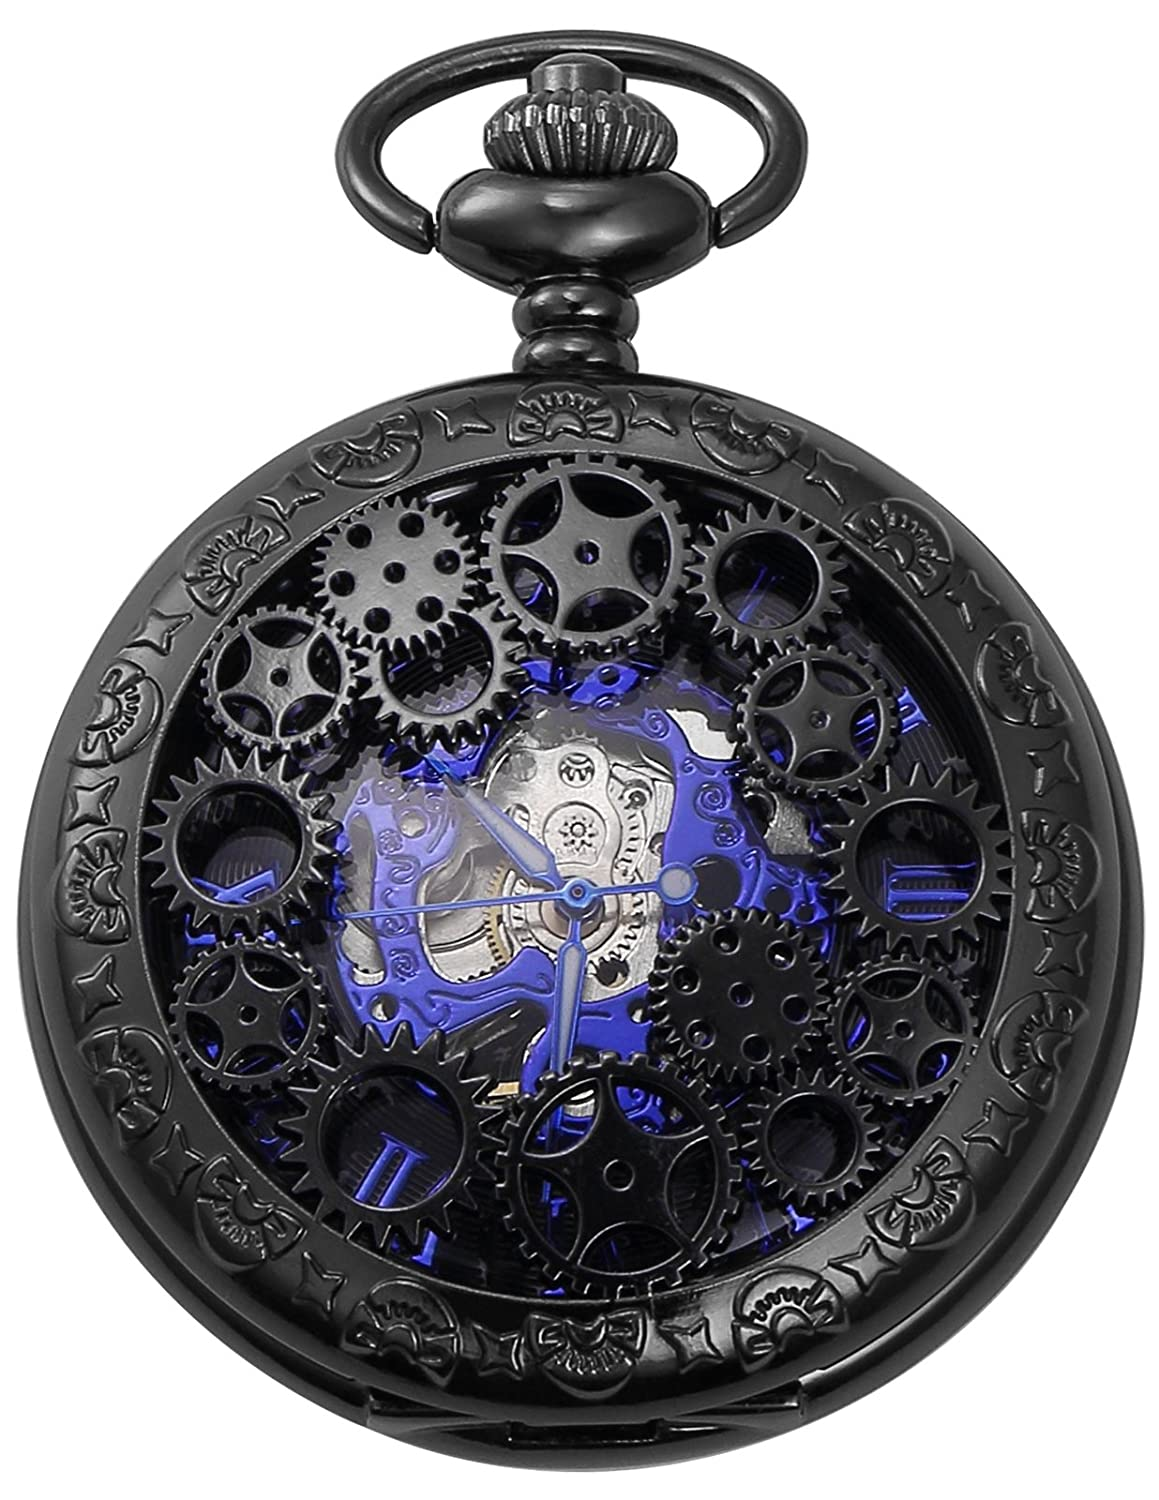 AMPM24 Mechanical Pocket Watch Skeleton Black Alloy Case WPK219